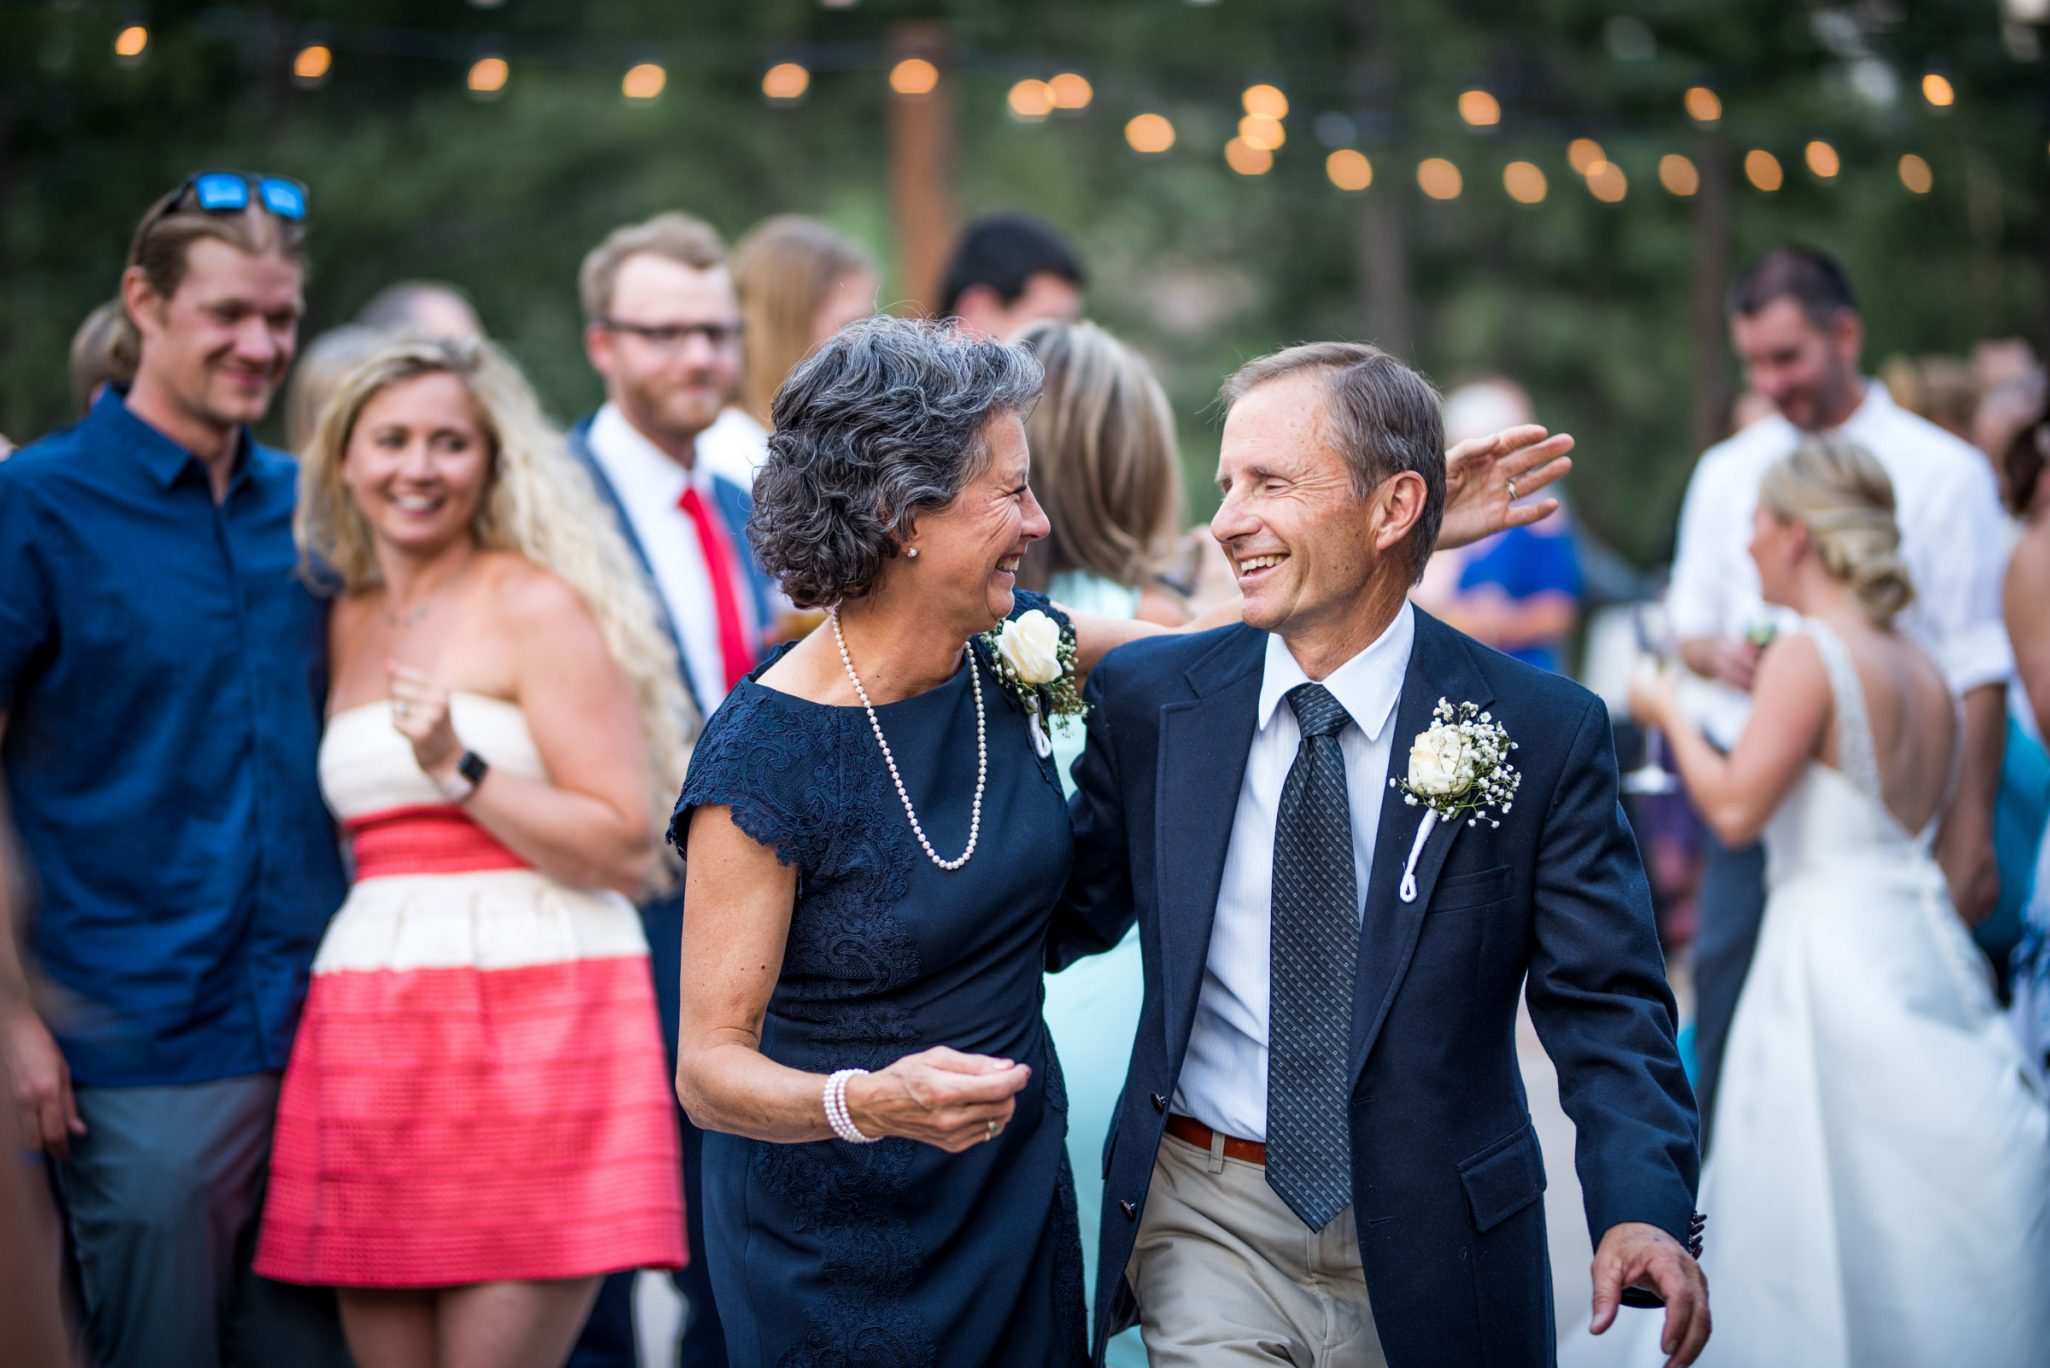 Dancing | Wedding reception at the Glacier Club, Durango Colorado